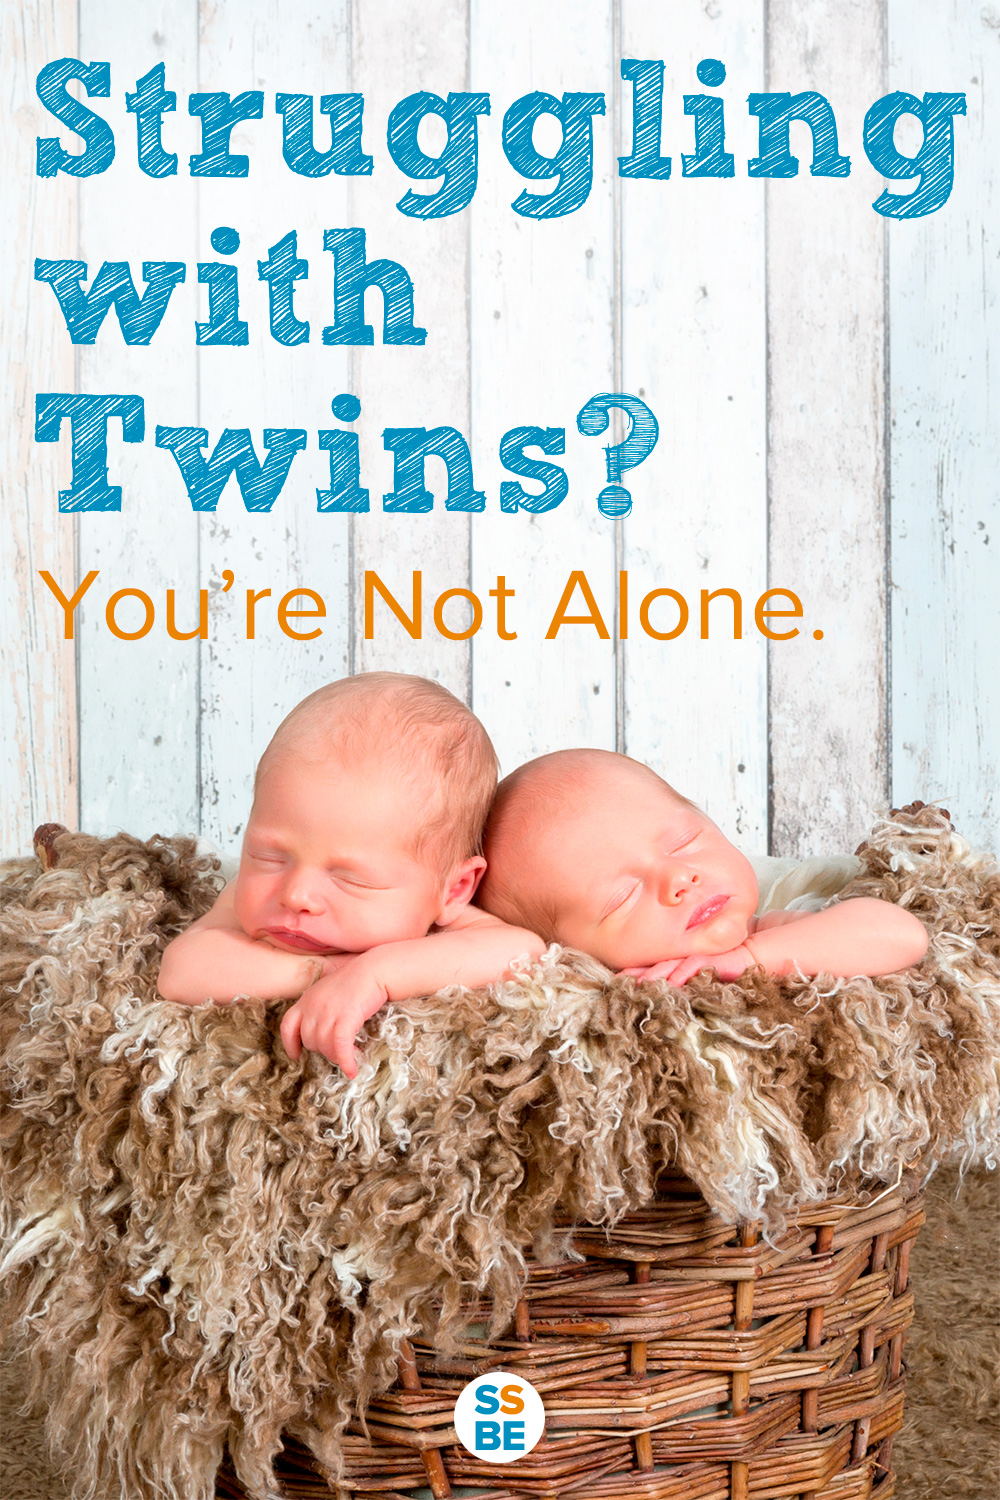 Are you struggling with twins and feeling isolated and alone? Learn why it's hard raising twins, how to cope, and the encouragement you need to hang in there.